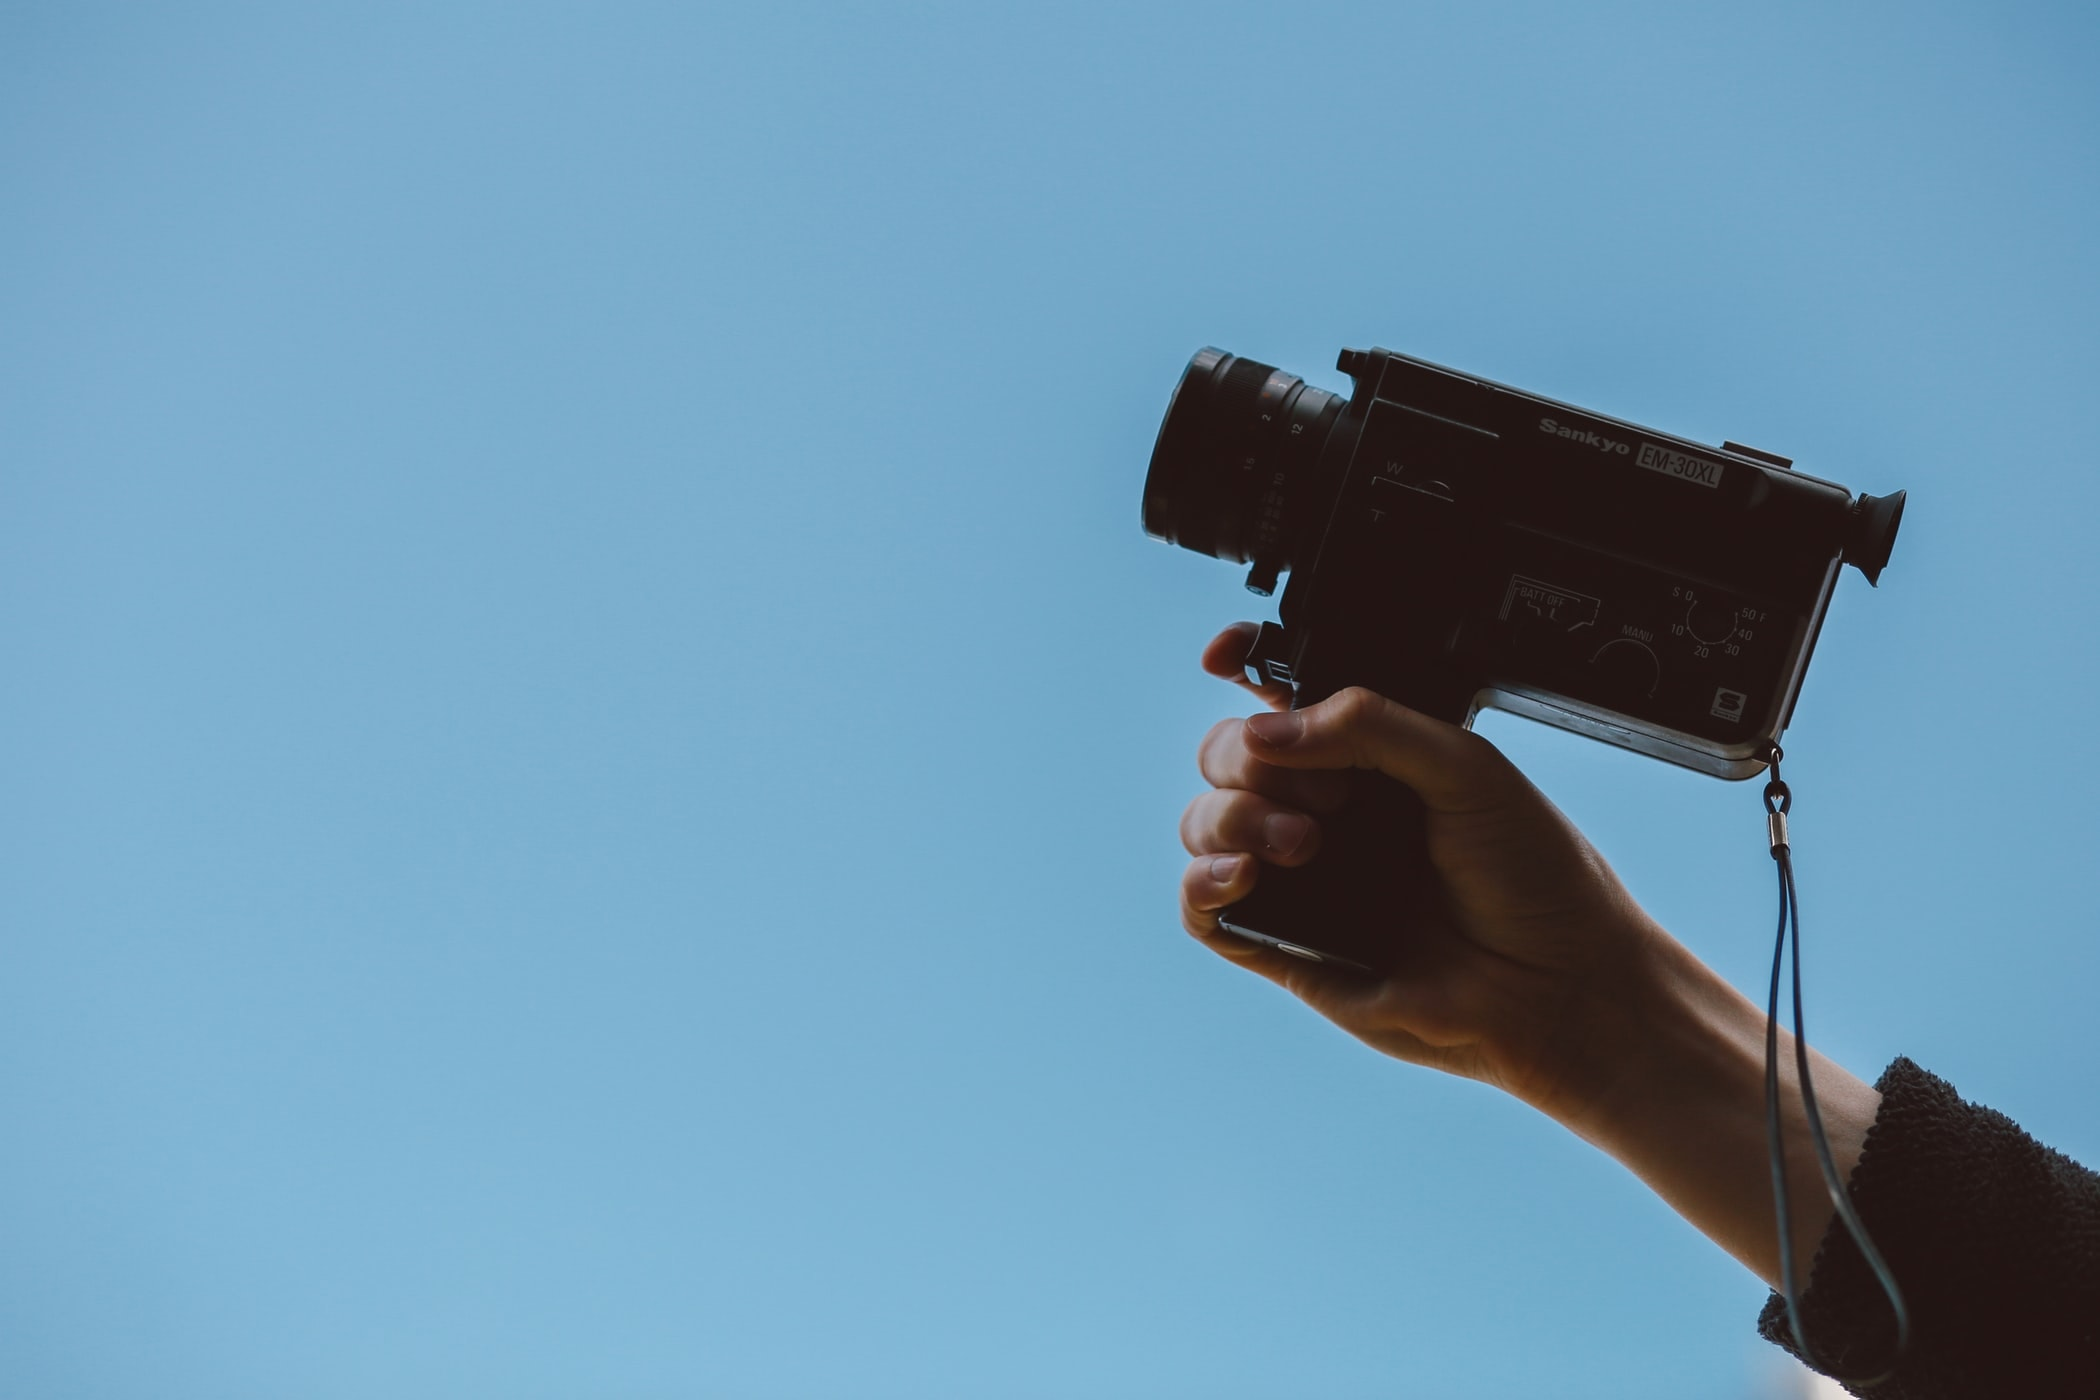 10 Best Budget Cameras For Filmmaking in 2019 - An image of someone holding a vintage camcorder